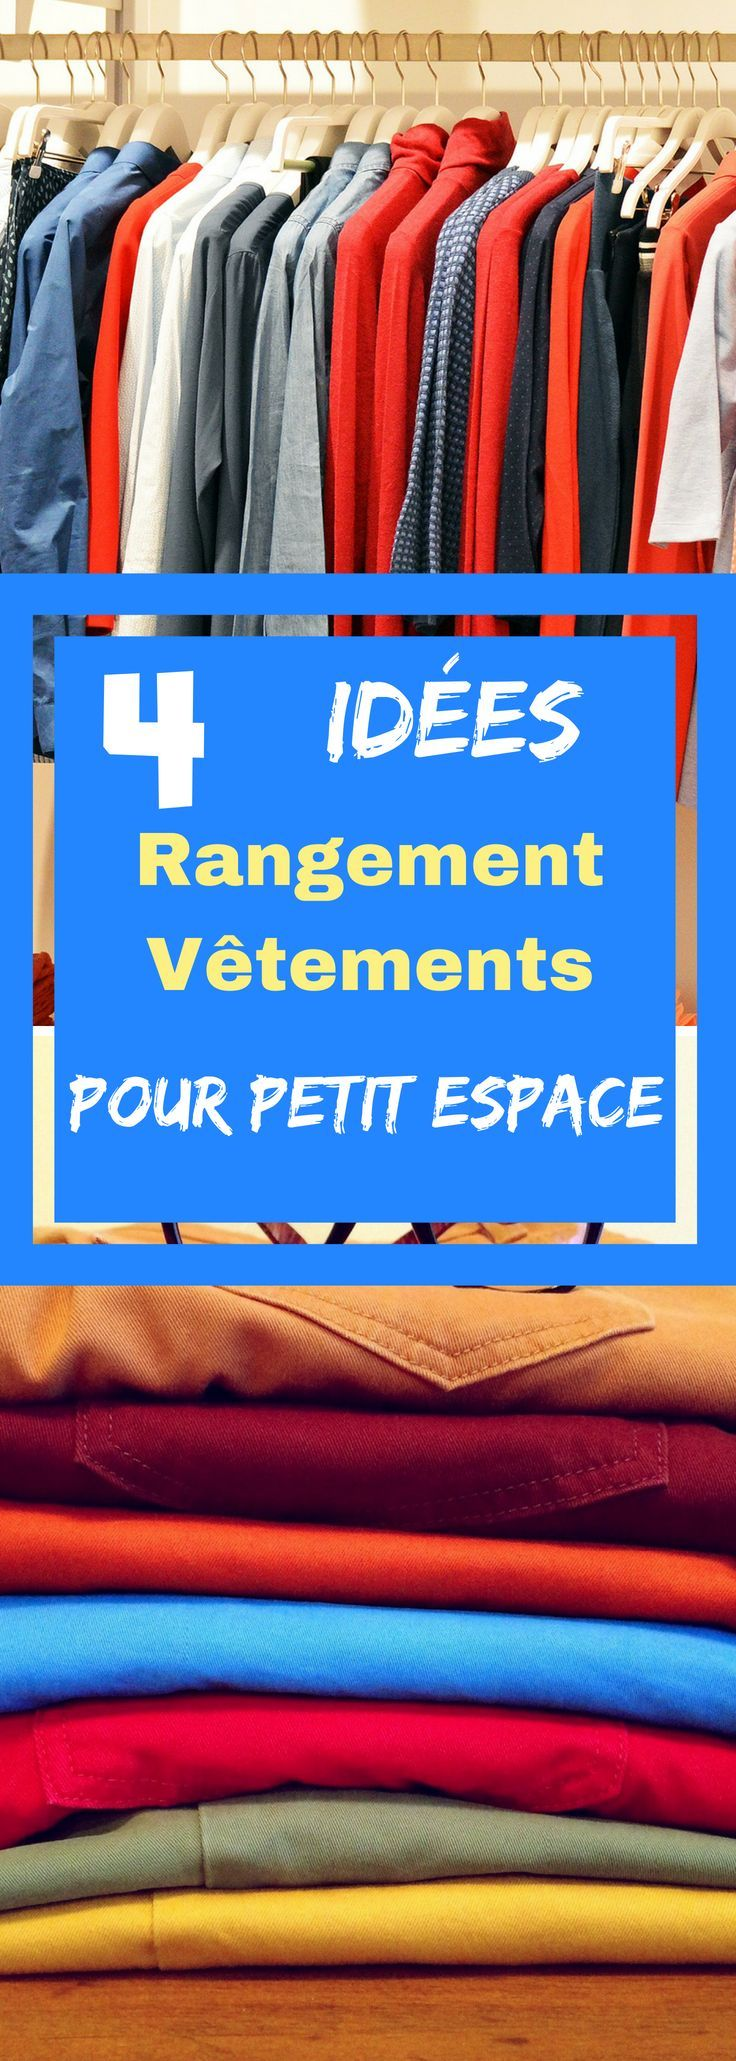 4 id es de rangement v tements pour petit espace. Black Bedroom Furniture Sets. Home Design Ideas